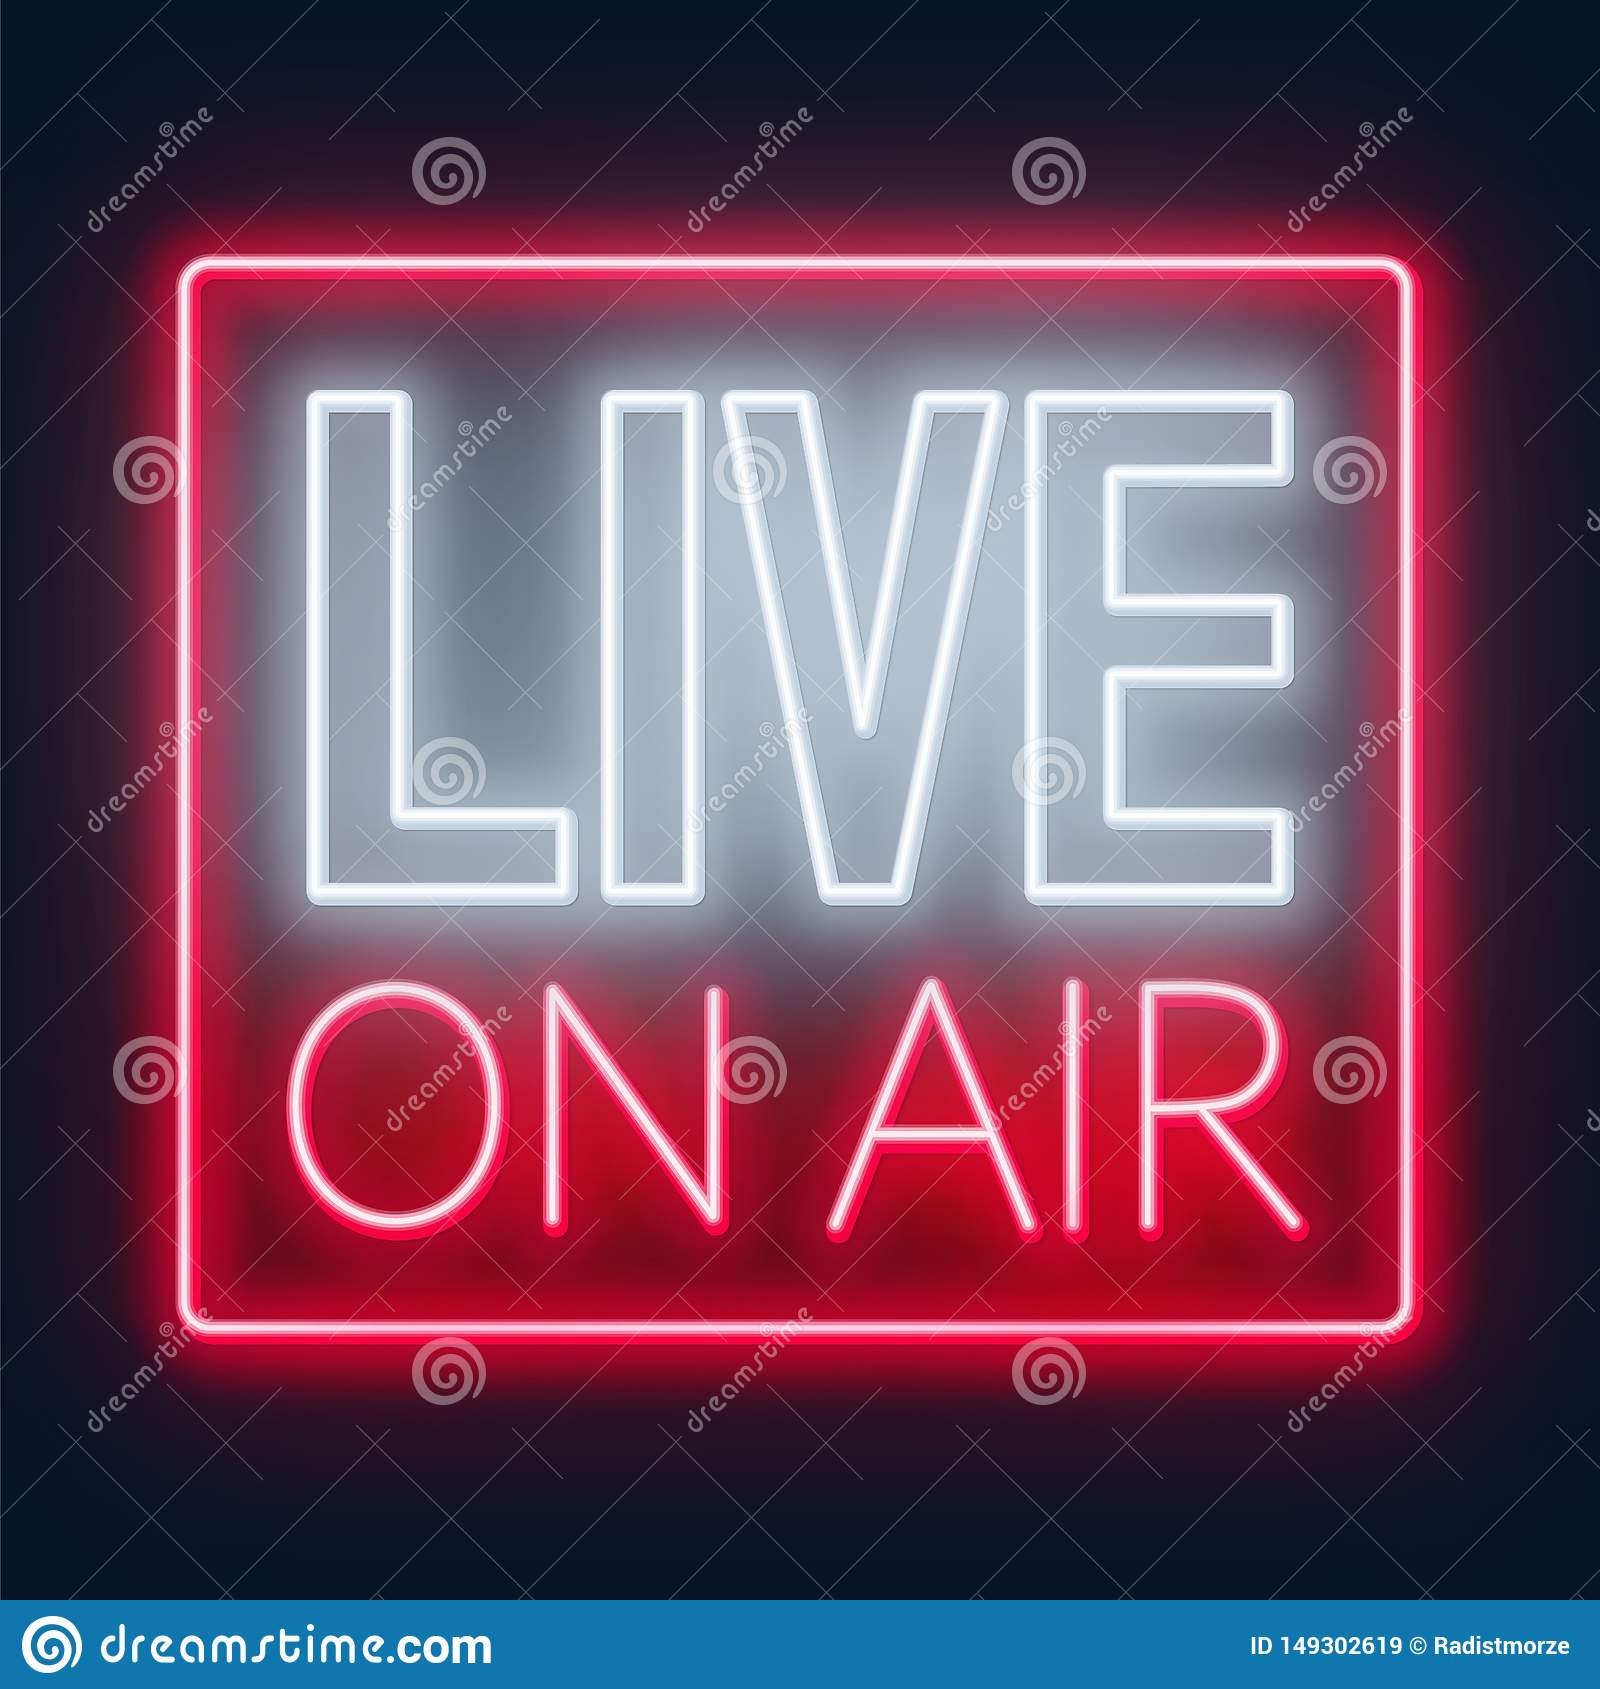 Live On Air Neon Glowing Sign On A Dark Background Stock